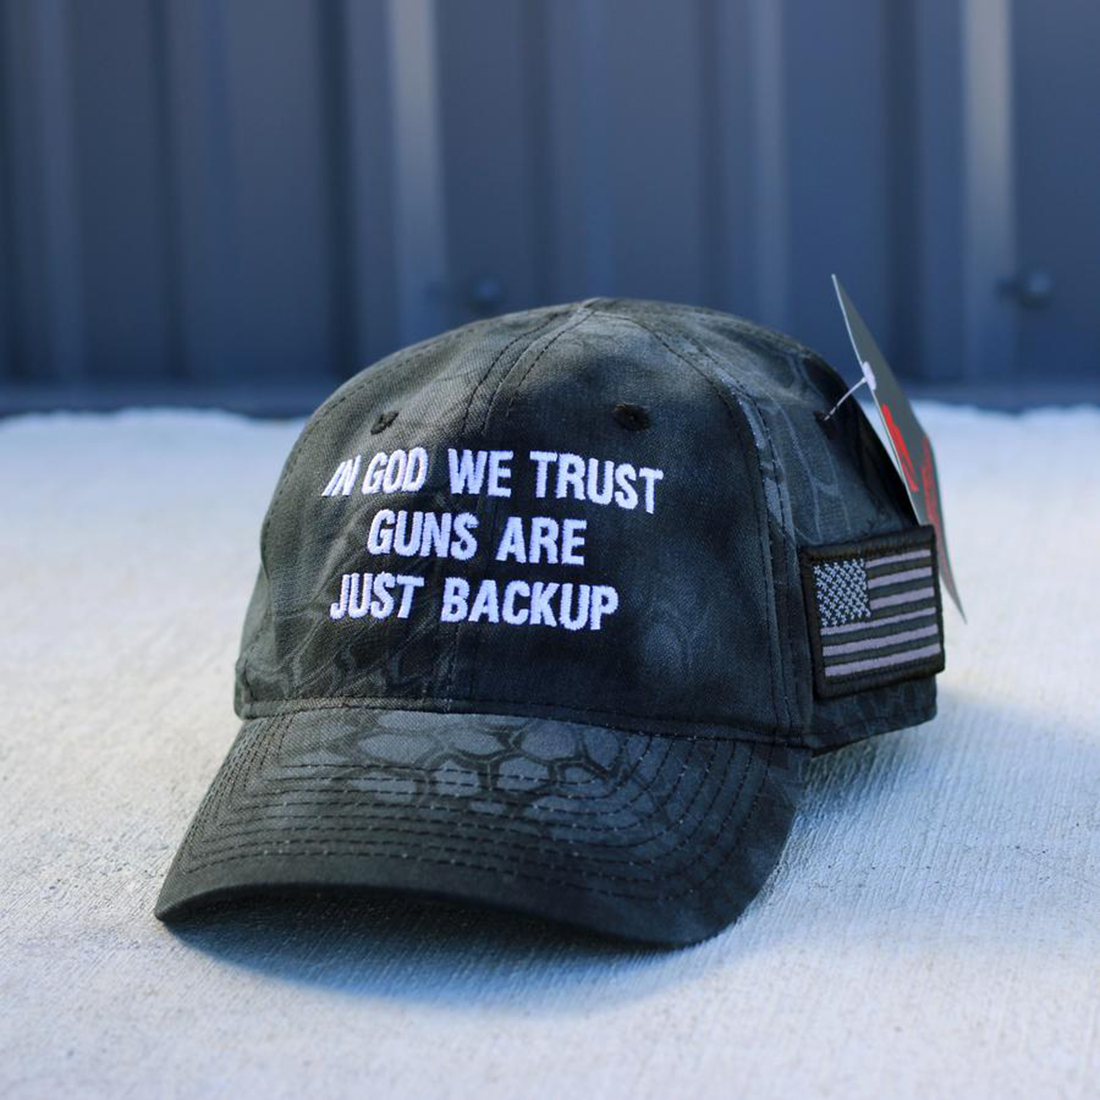 In god we trust guns are just backup hat cap